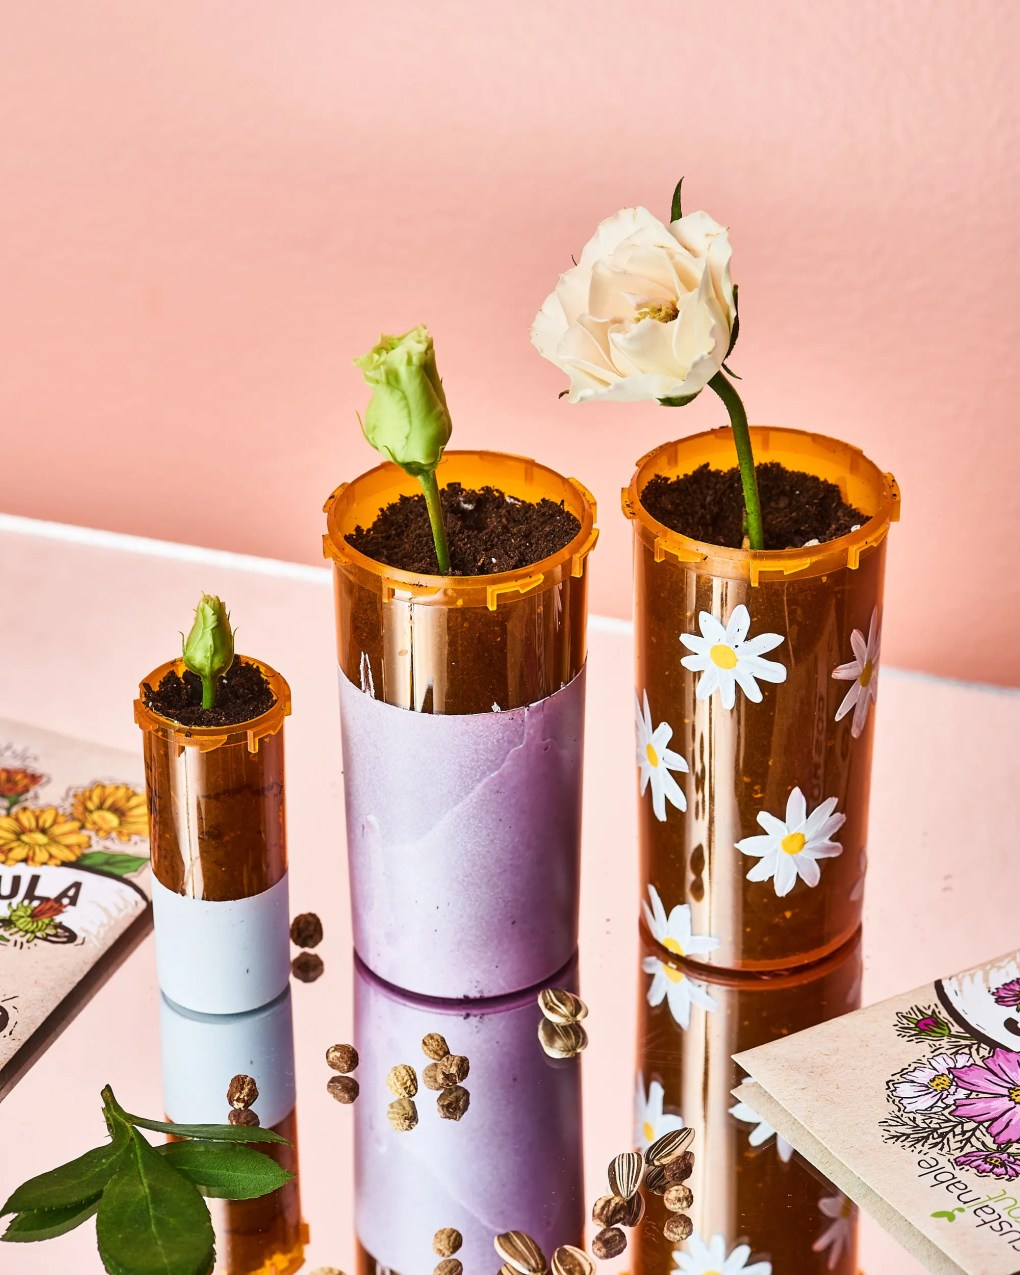 25 New Ways to Reuse Your Old Pill Bottles; #Recycle #ReusePillBottles